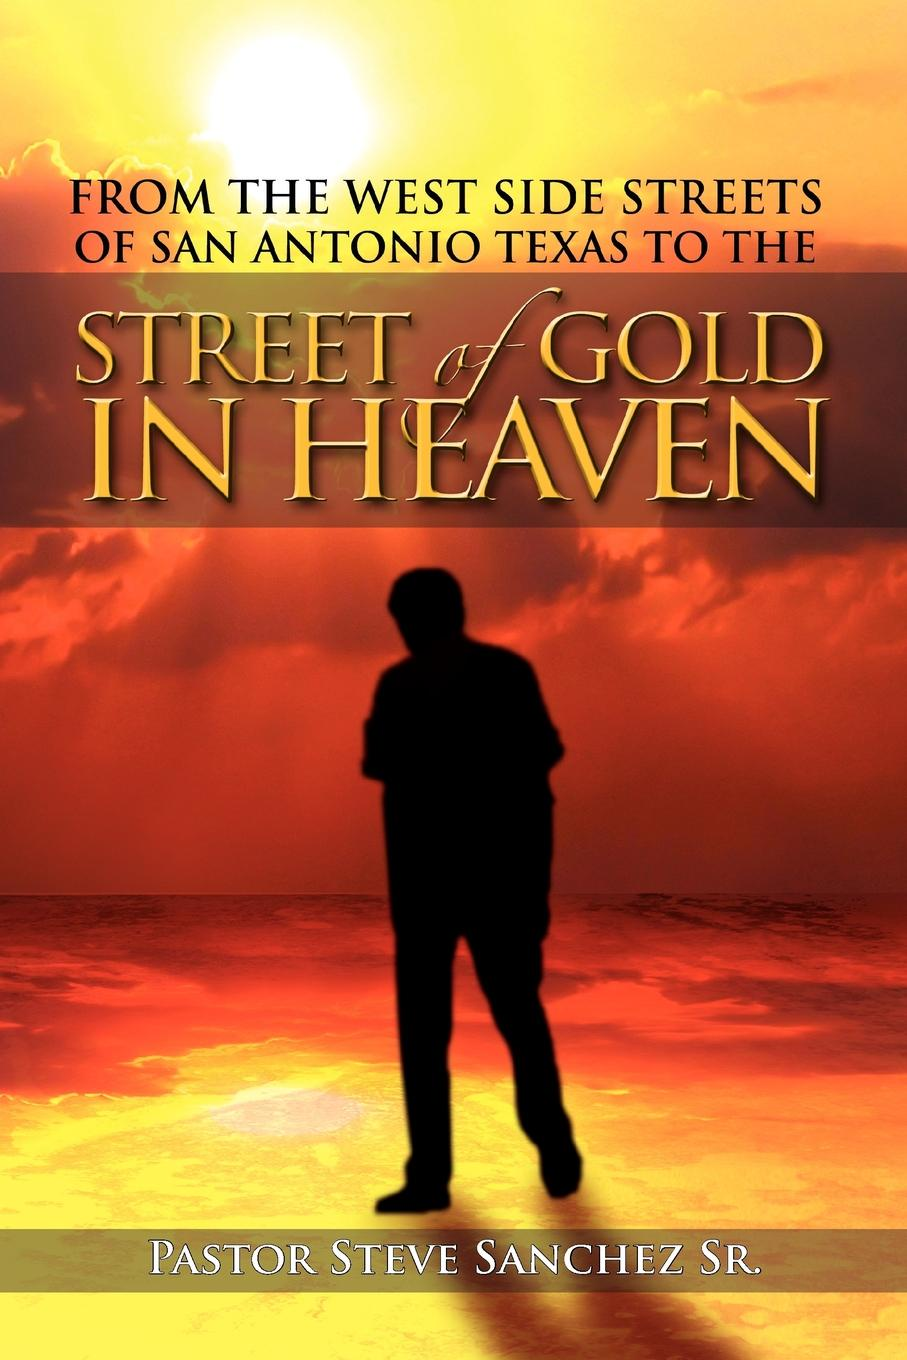 Pastor Steve Sanchez Sr From the West Side Streets of San Antonio Texas to the Street of Gold in Heaven. Lifeline Outreach Street & Prison Ministries paula lytle lifeline to young mothers